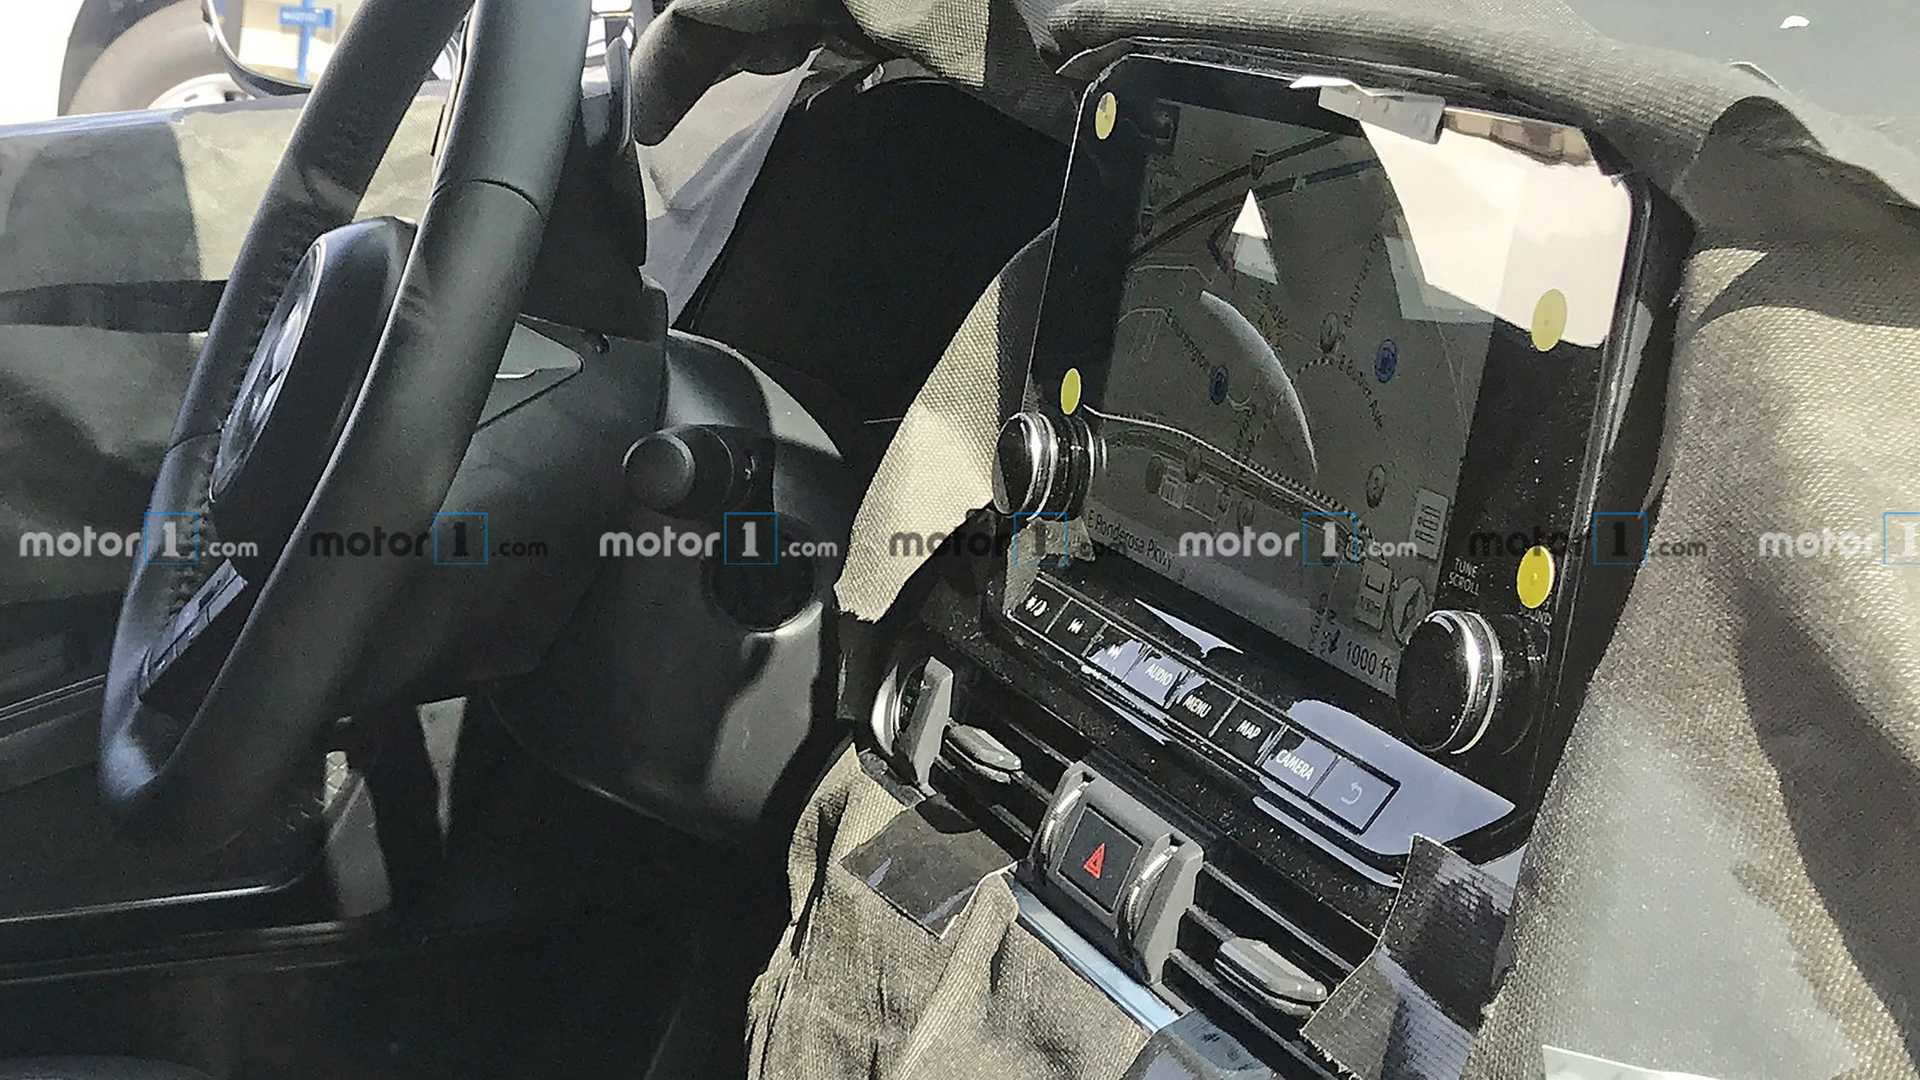 Next-Gen Nissan Pathfinder Spied Showing Overhauled Interior